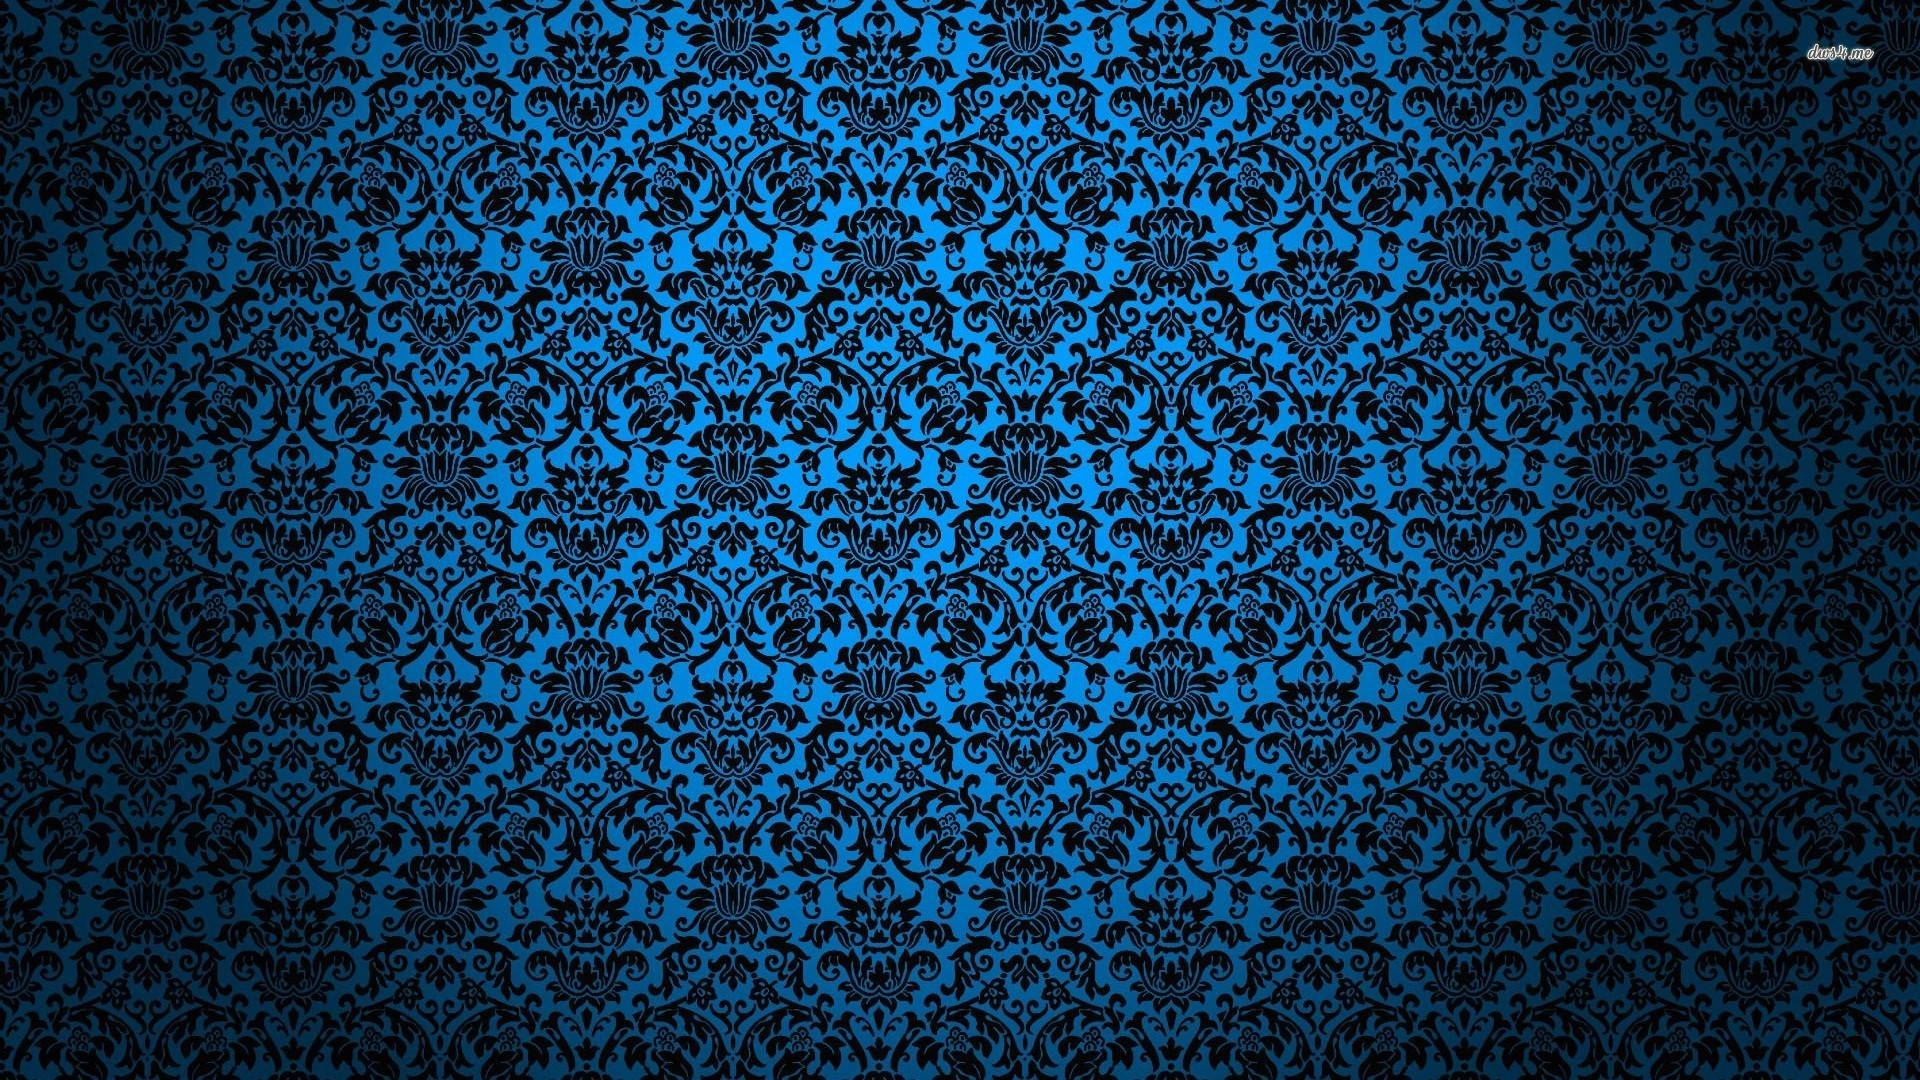 Desktop Backgrounds Patterns